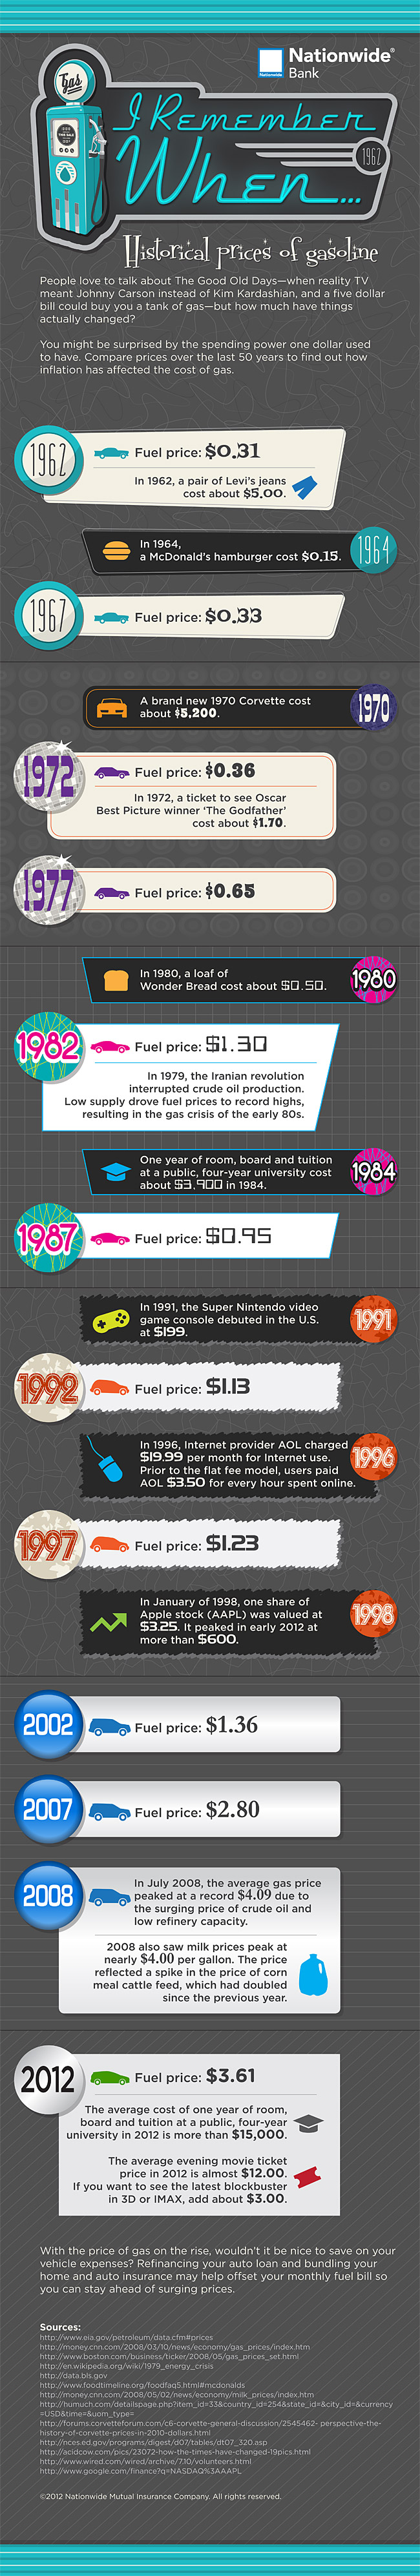 gas prices infographic